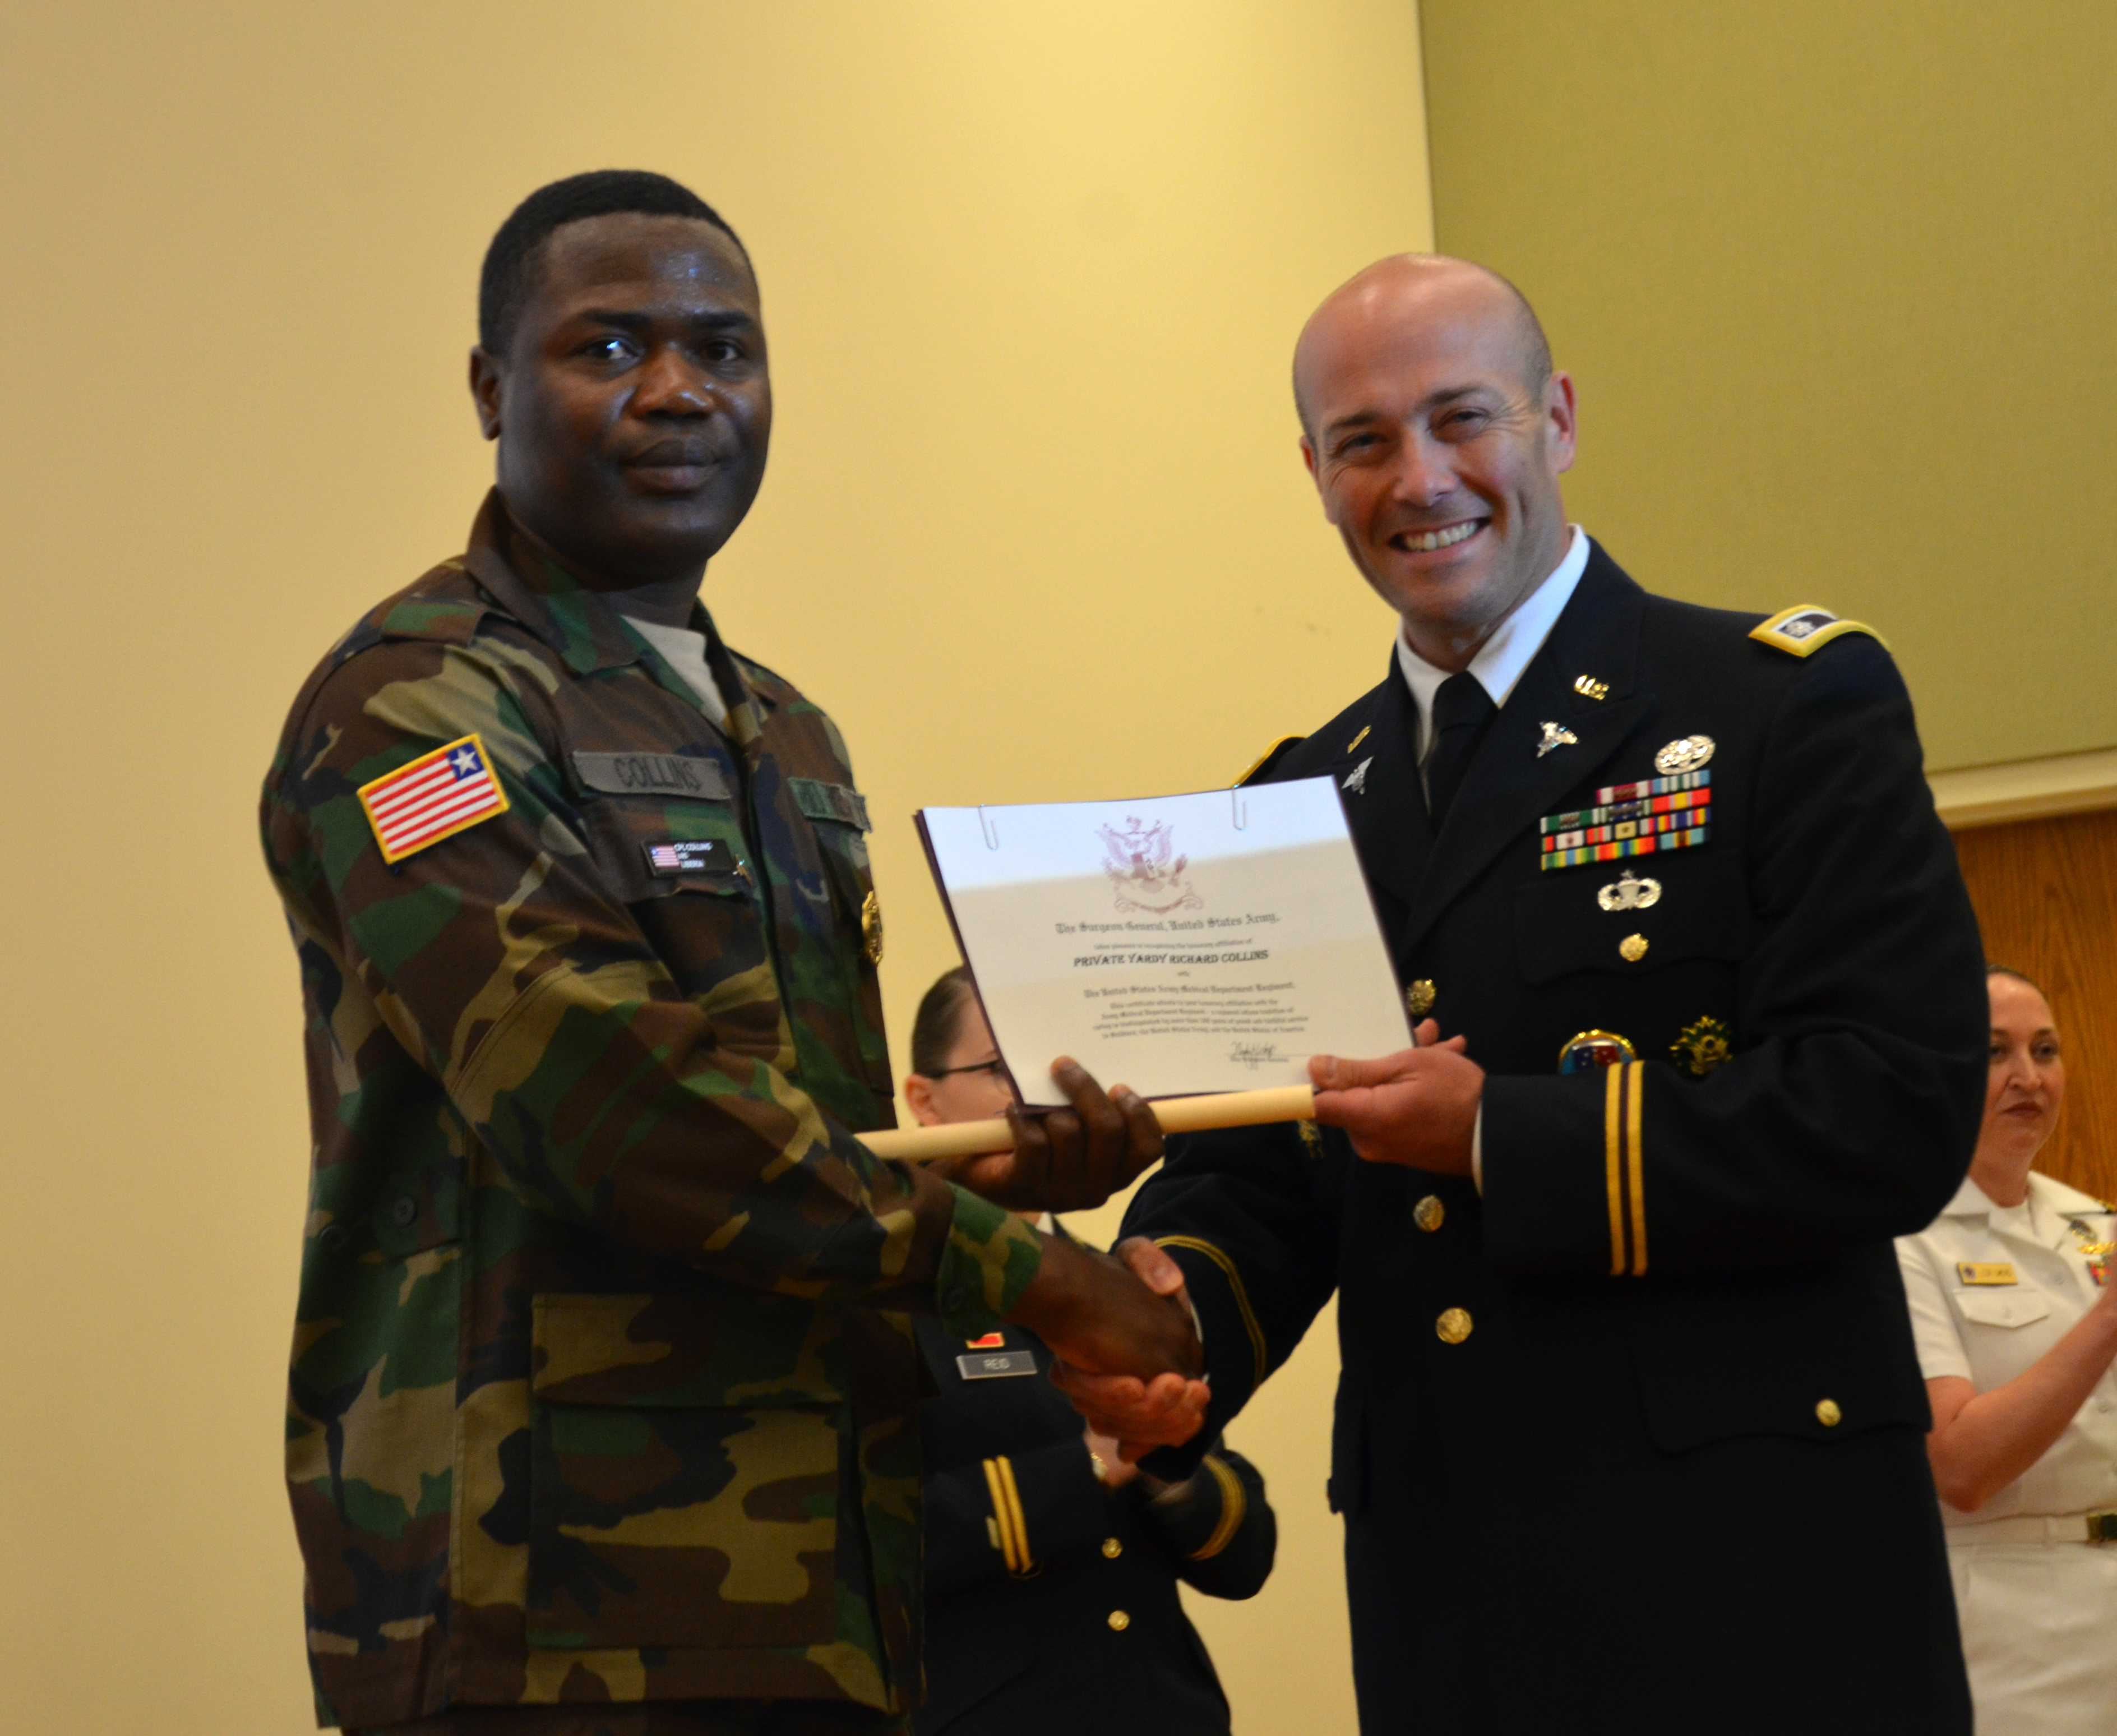 Pfc. Yardy Collins, Liberian Armed Forces, receives a certificate from Lt. Col. Paul Lang, Army Service lead for the Medical Education and Training Campus preventive medicine specialist program, during the course graduation ceremony, October 20, 2017, making him an honorary member of the AMEDD regiment. Collins is the first international military student from Liberia to graduate from the program.